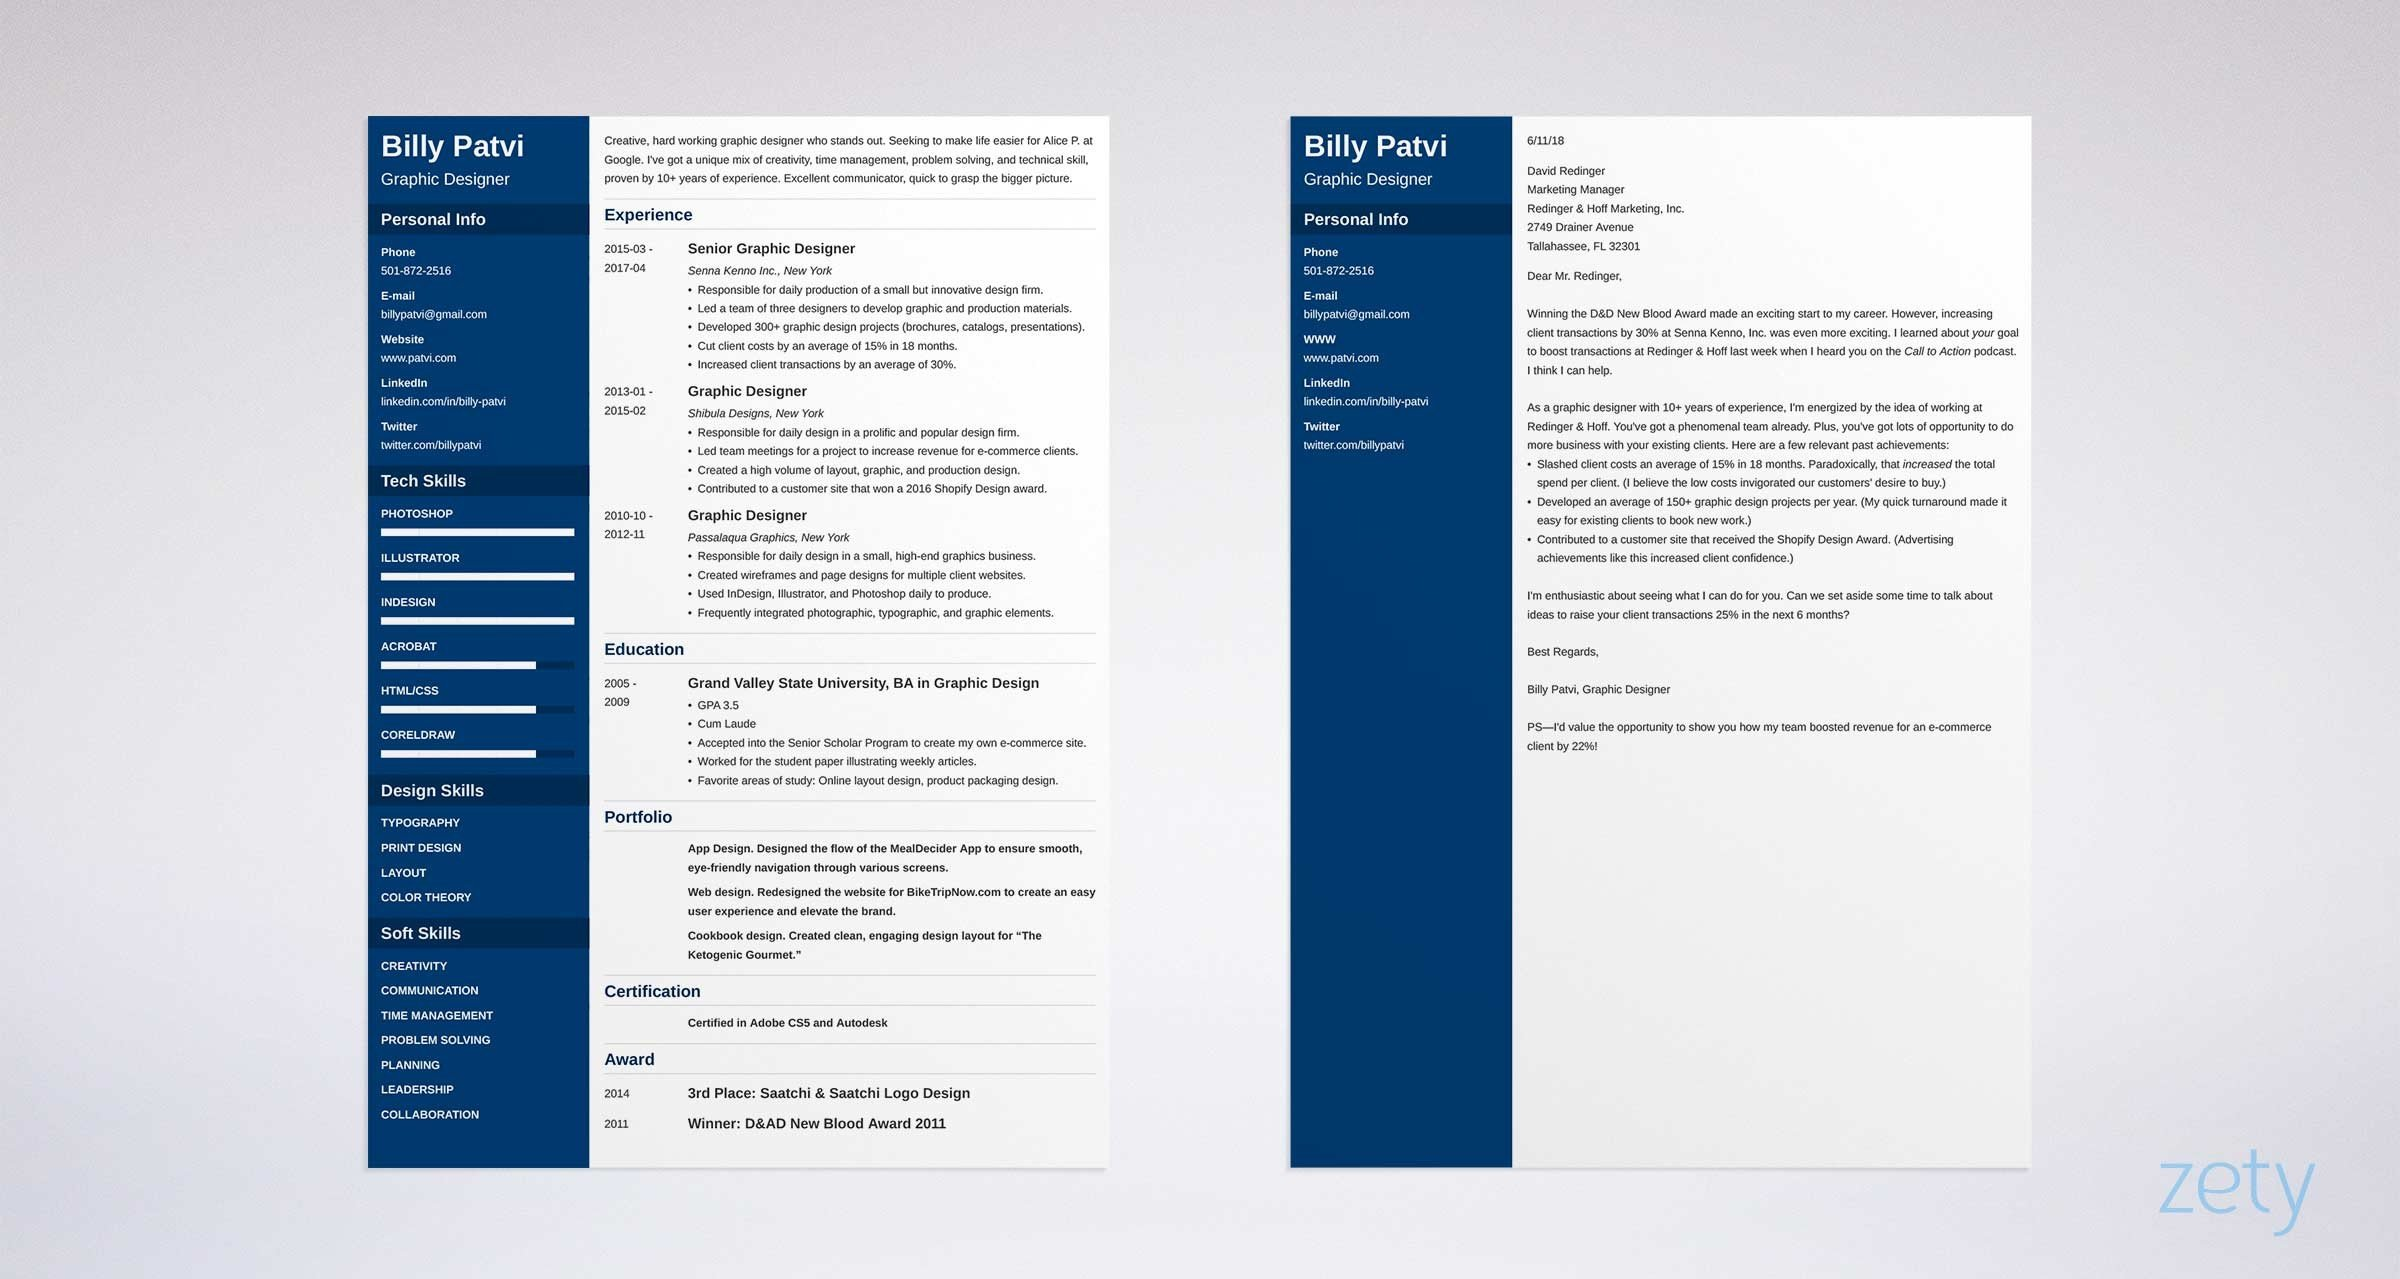 Graphic Design Cover Letter: Sample & Complete Guide [15+ Examples]